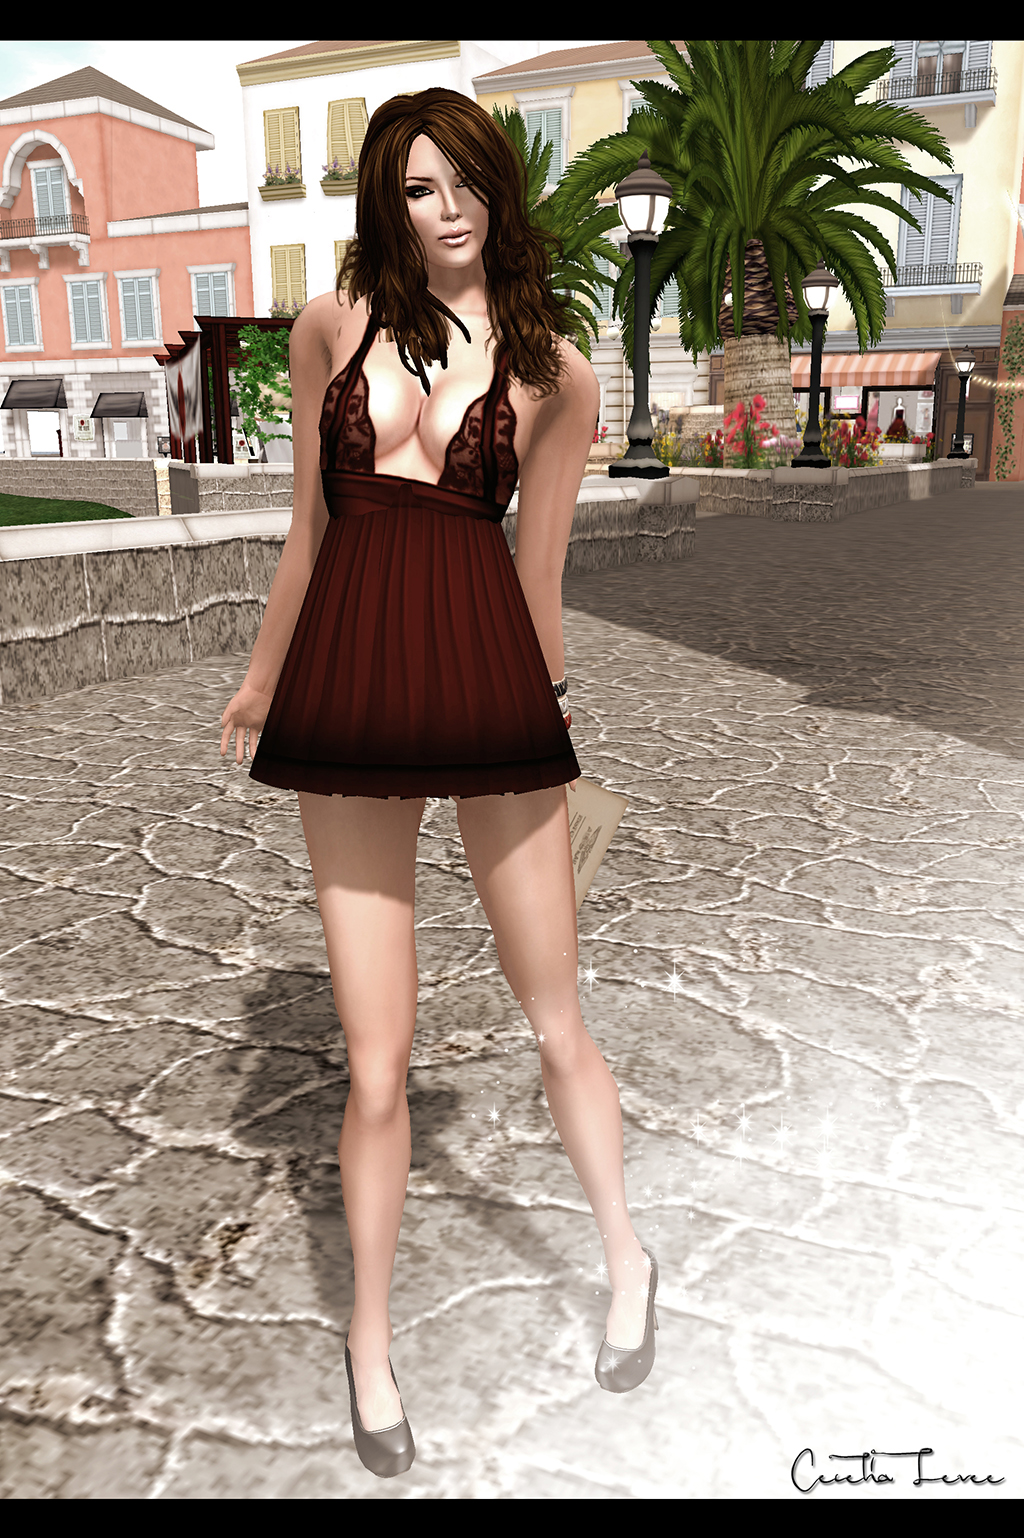 Freebies for cece september 2011 lady in red dress deliciosco design voltagebd Image collections